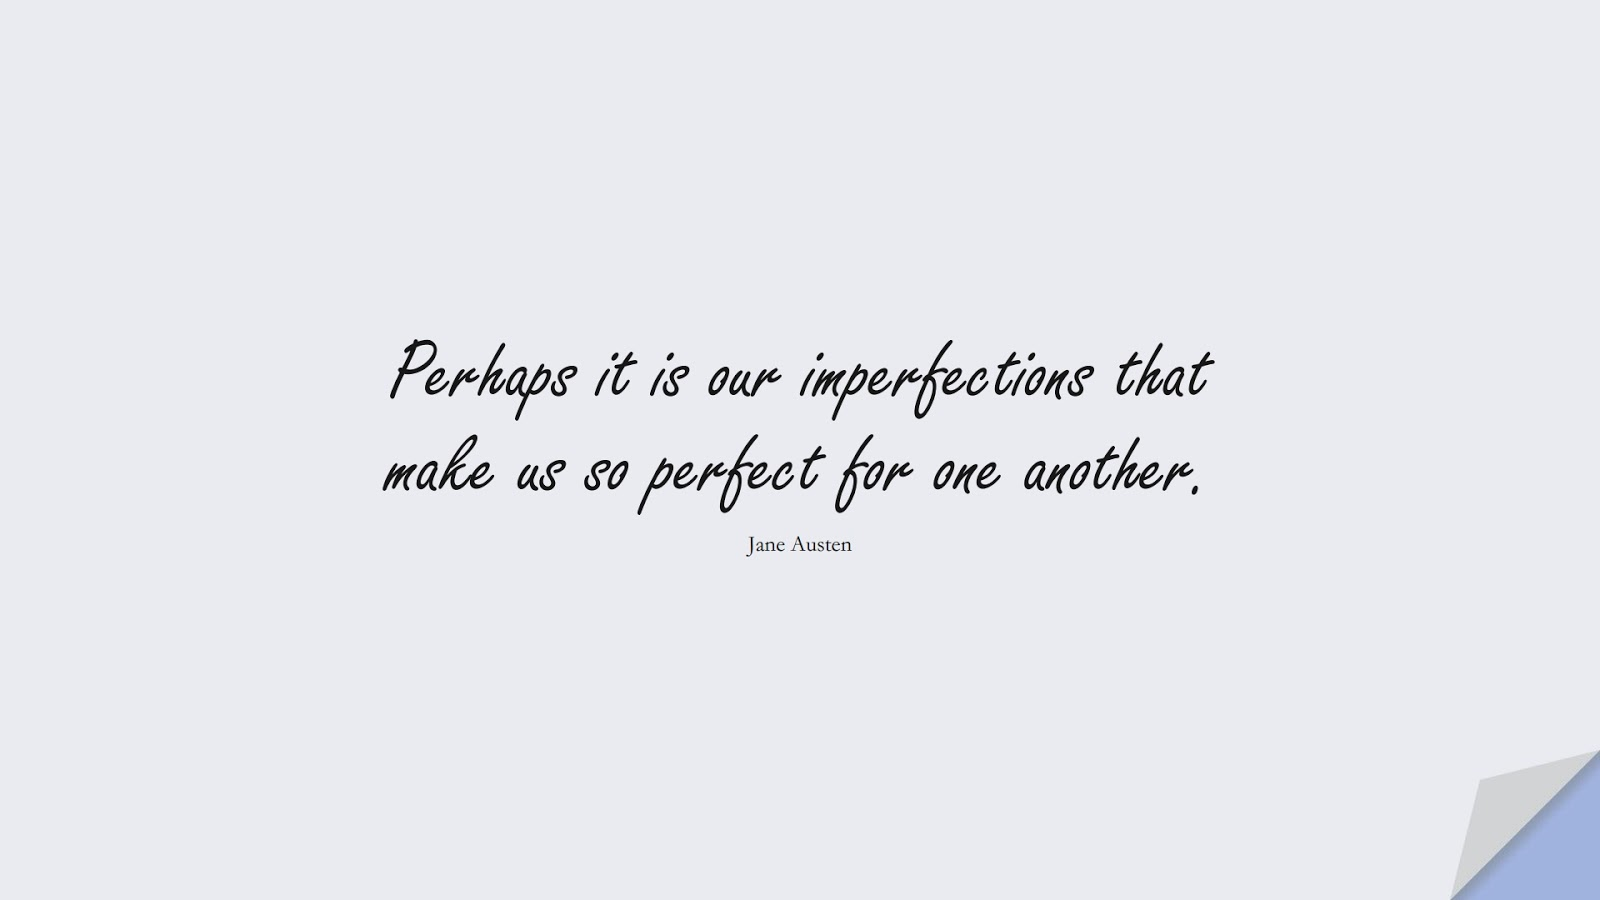 Perhaps it is our imperfections that make us so perfect for one another. (Jane Austen);  #LoveQuotes